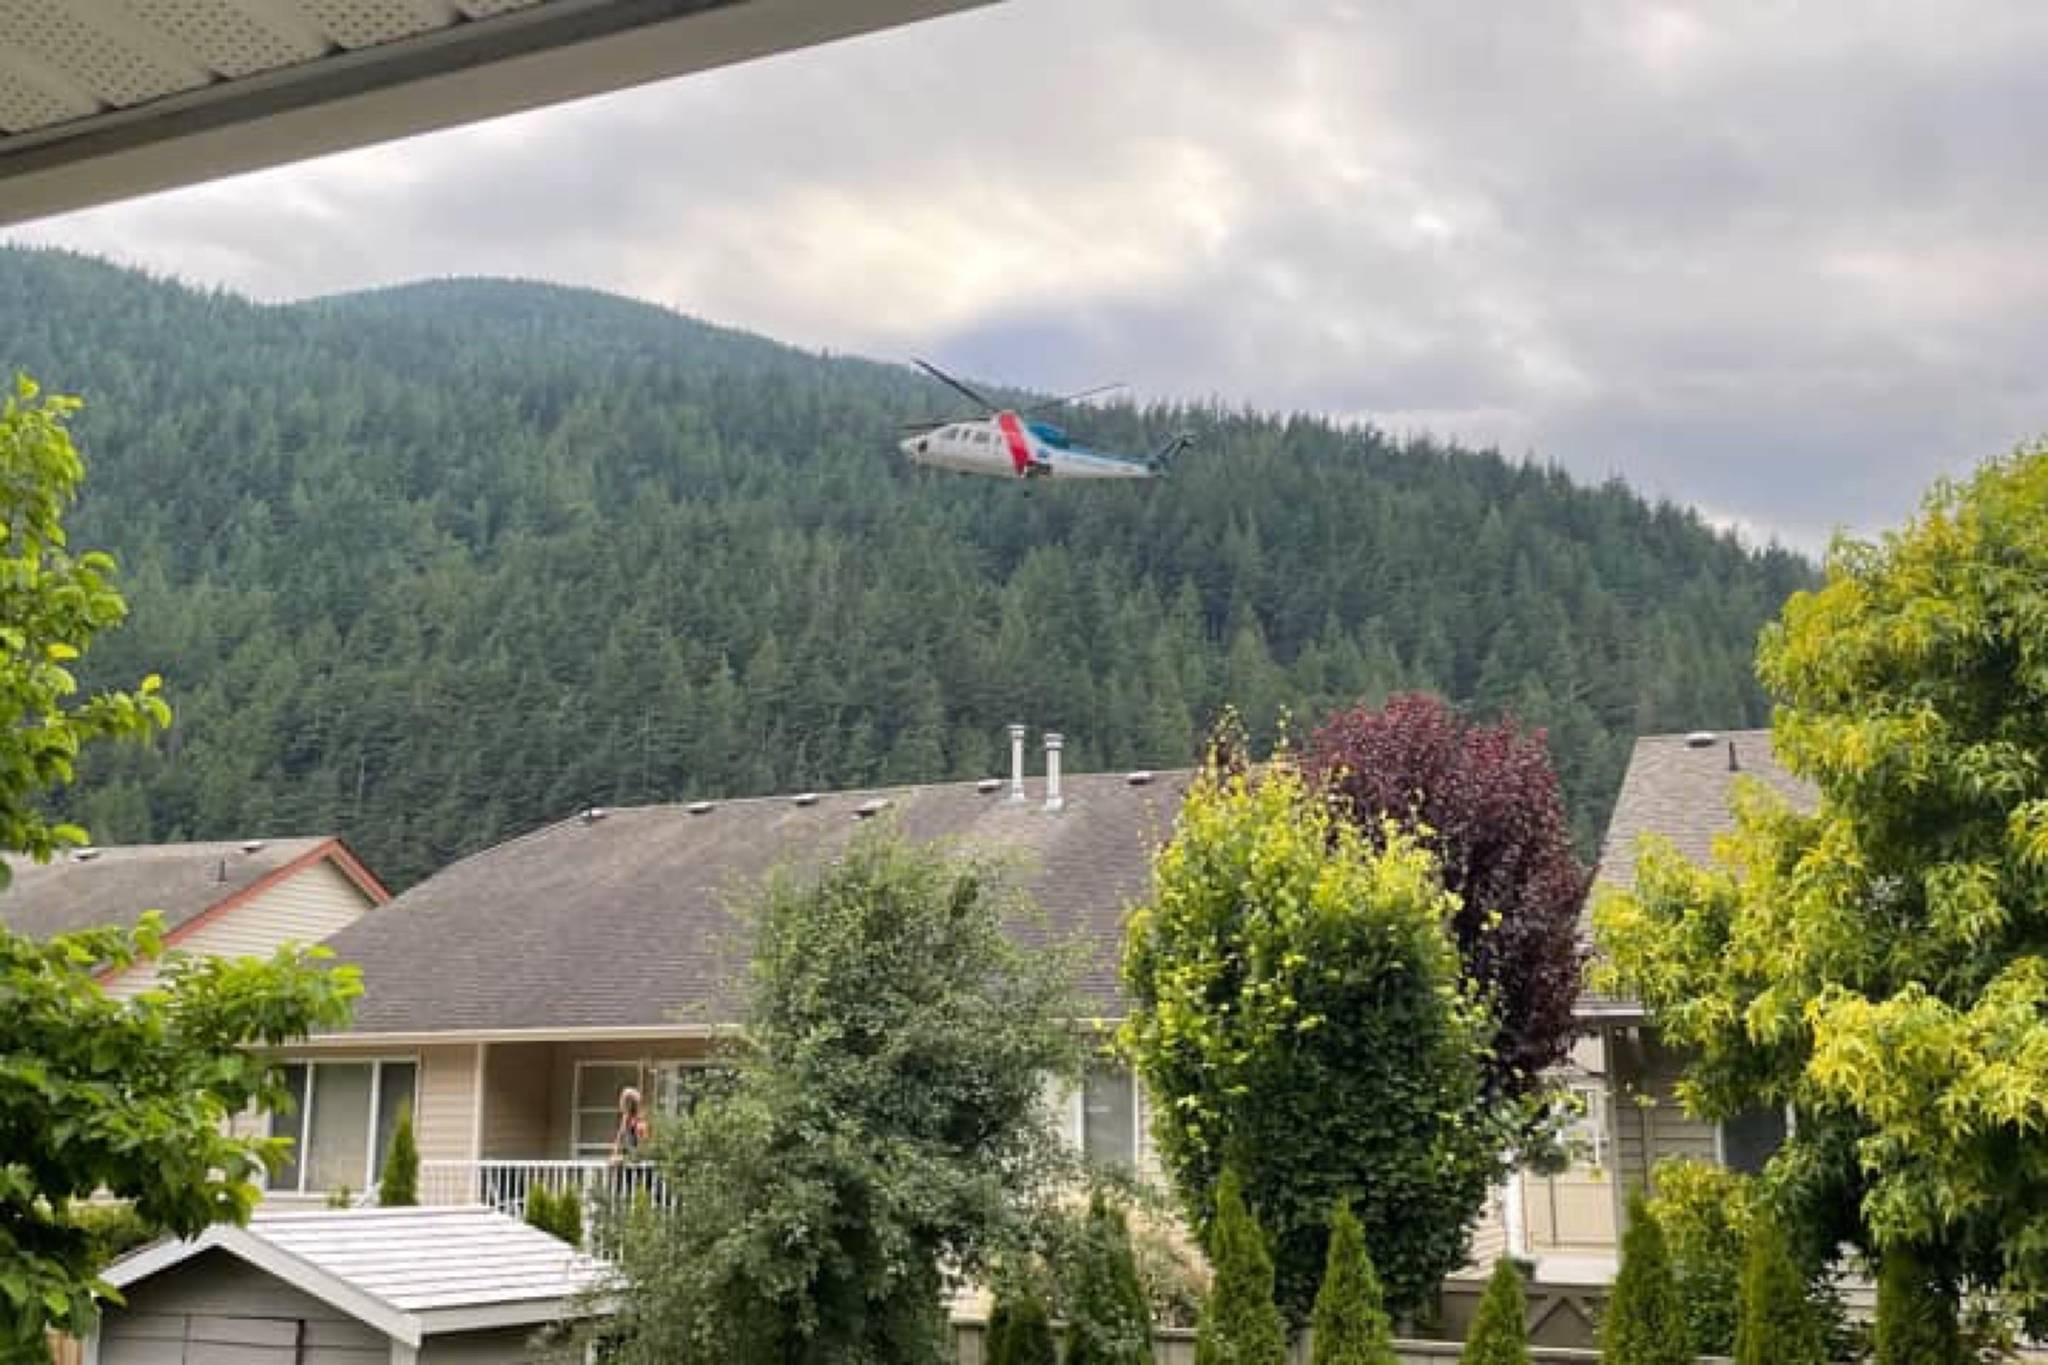 An air ambulance hovers over Harrison Hot Springs as medics respond to reports of a two-year-old drowning in a hot tub. Thanks to the quick action of emergency responders, two toddlers were saved from drowning last week. (Photo/Caprice Schweda)